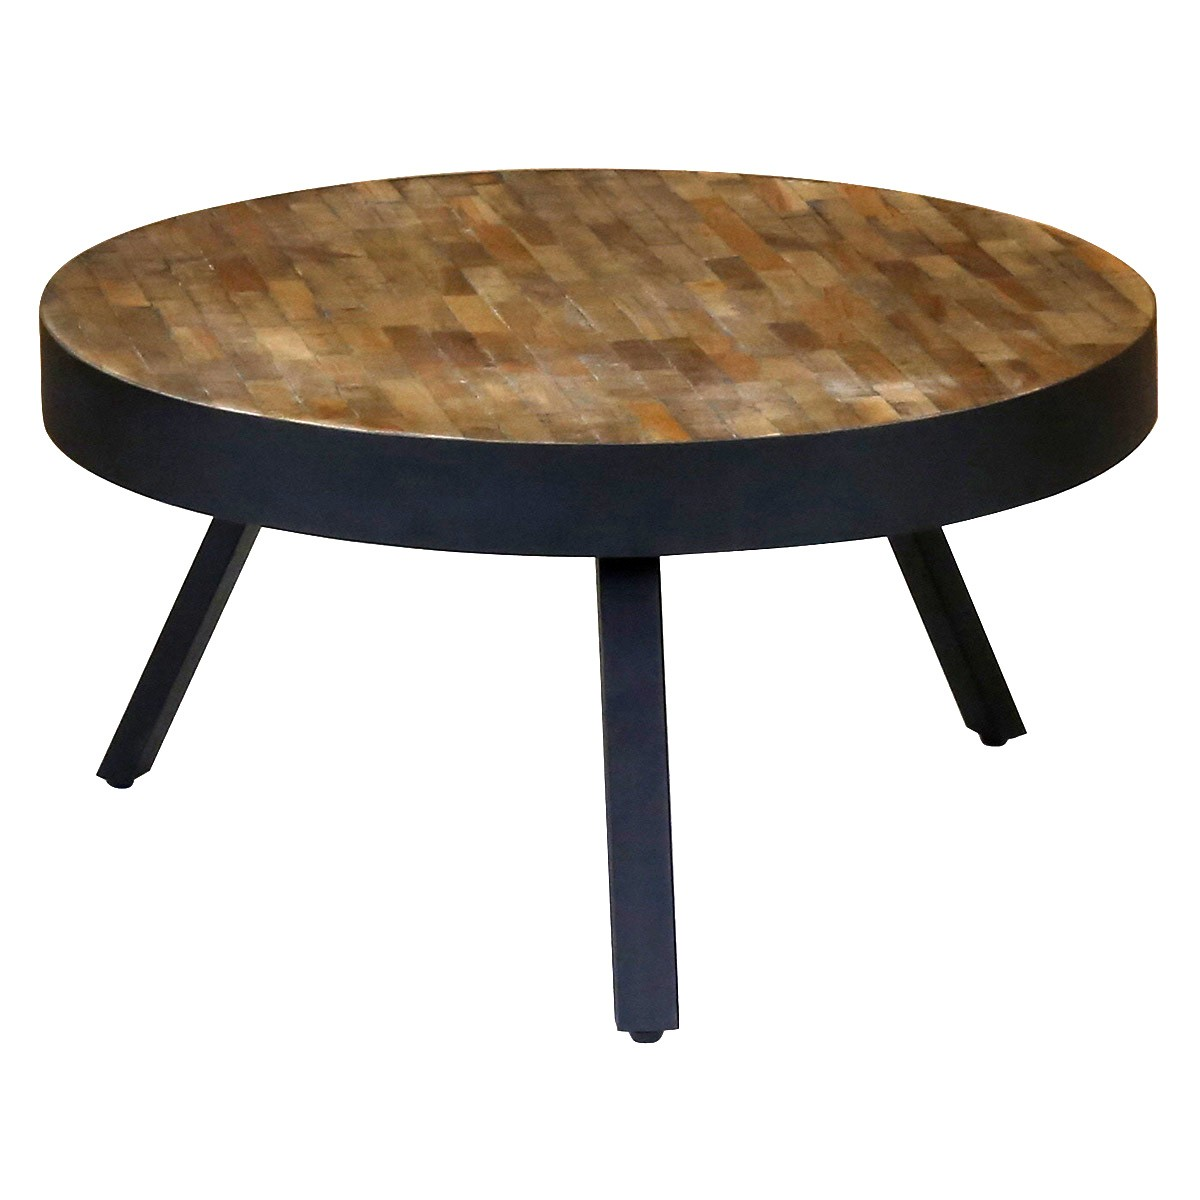 Table basse ronde teck et m tal style industriel et loft - Table basse ronde but ...